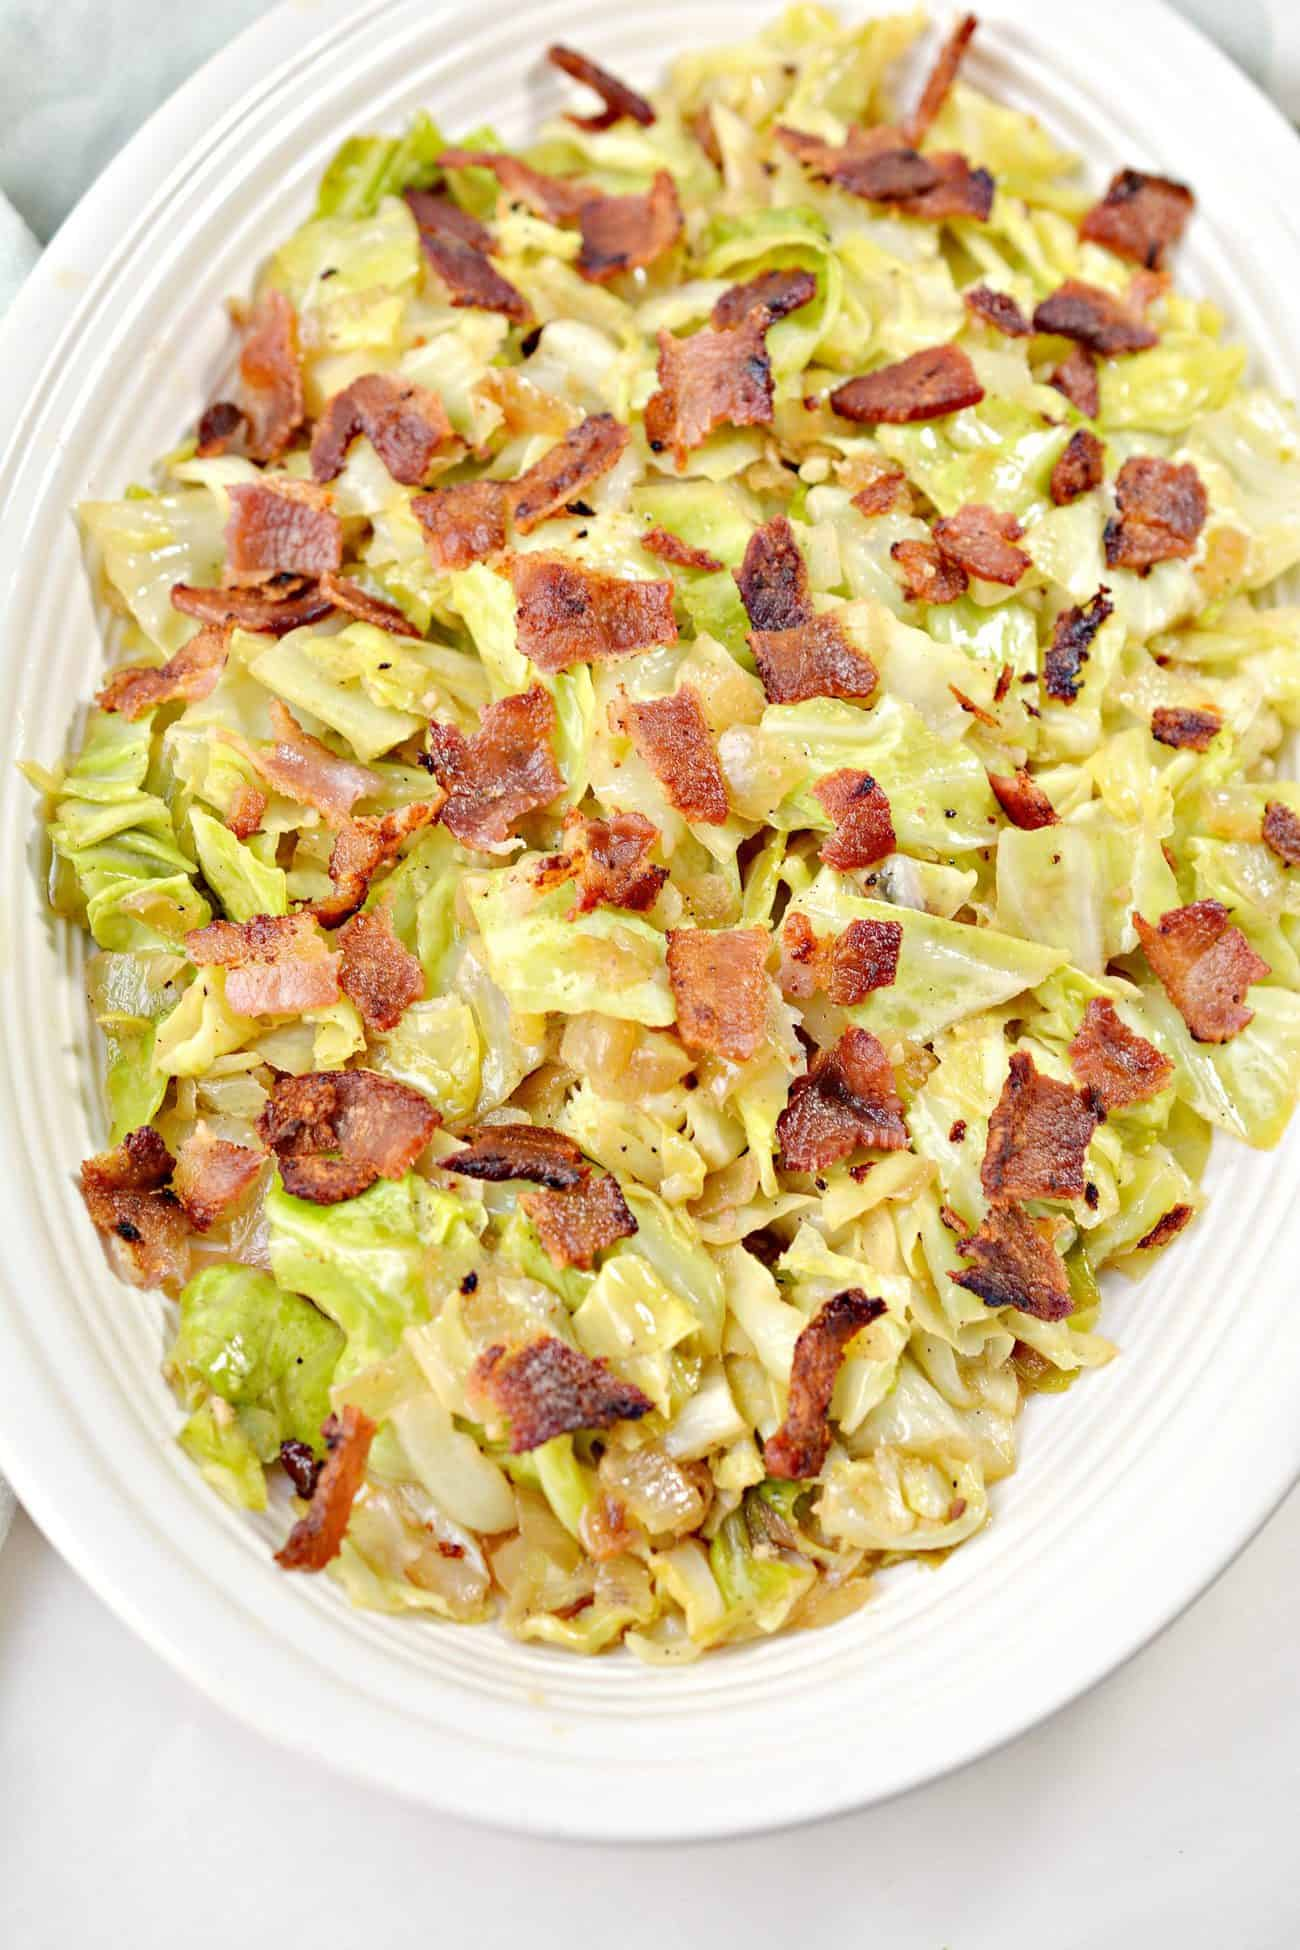 Fried Cabbage with Onions and Bacon